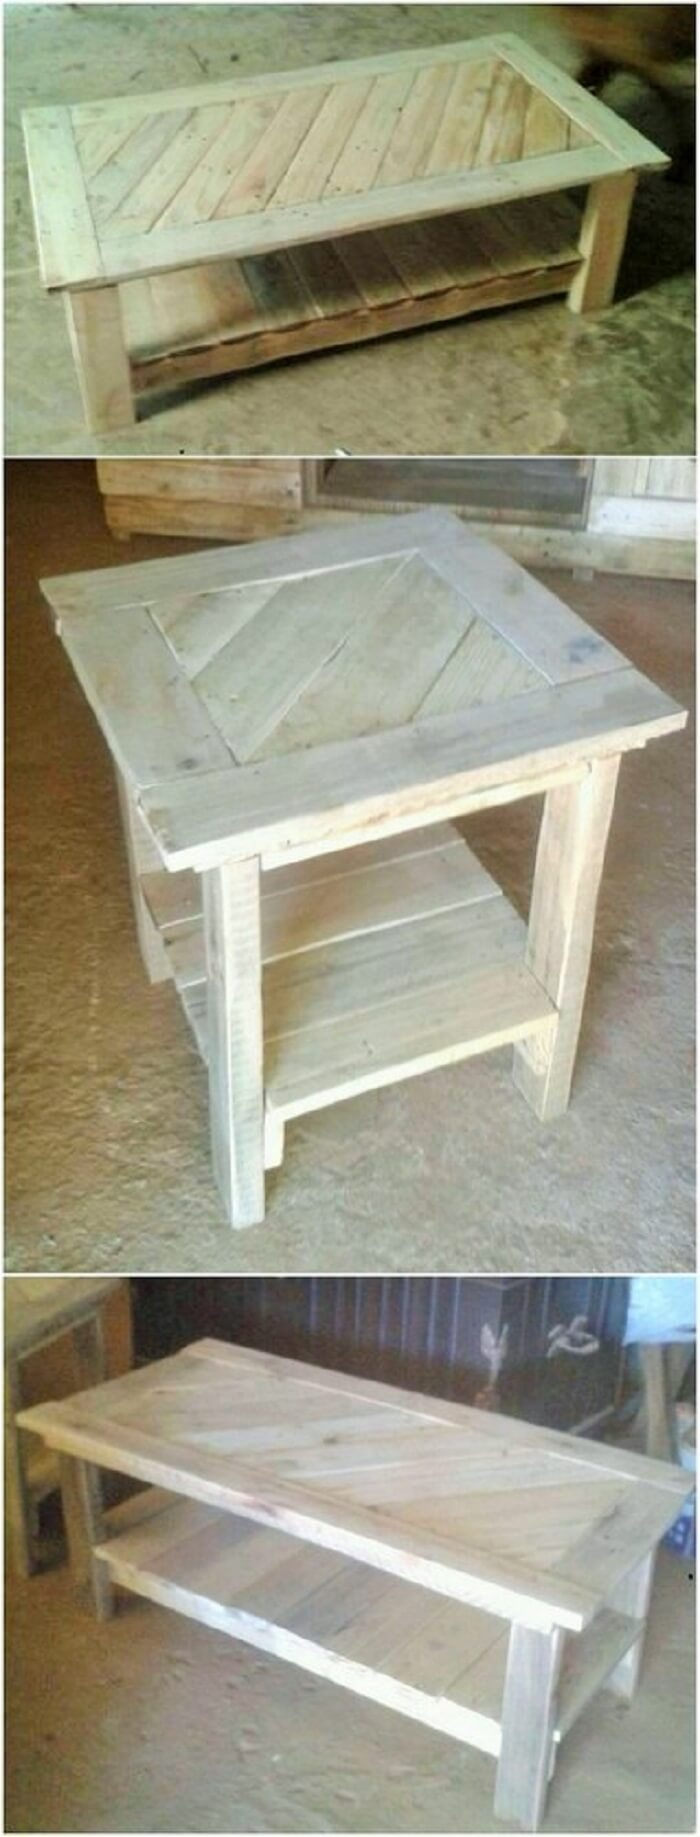 DIY WOOD PALLETS MADE TERRACE PROJECT (18)